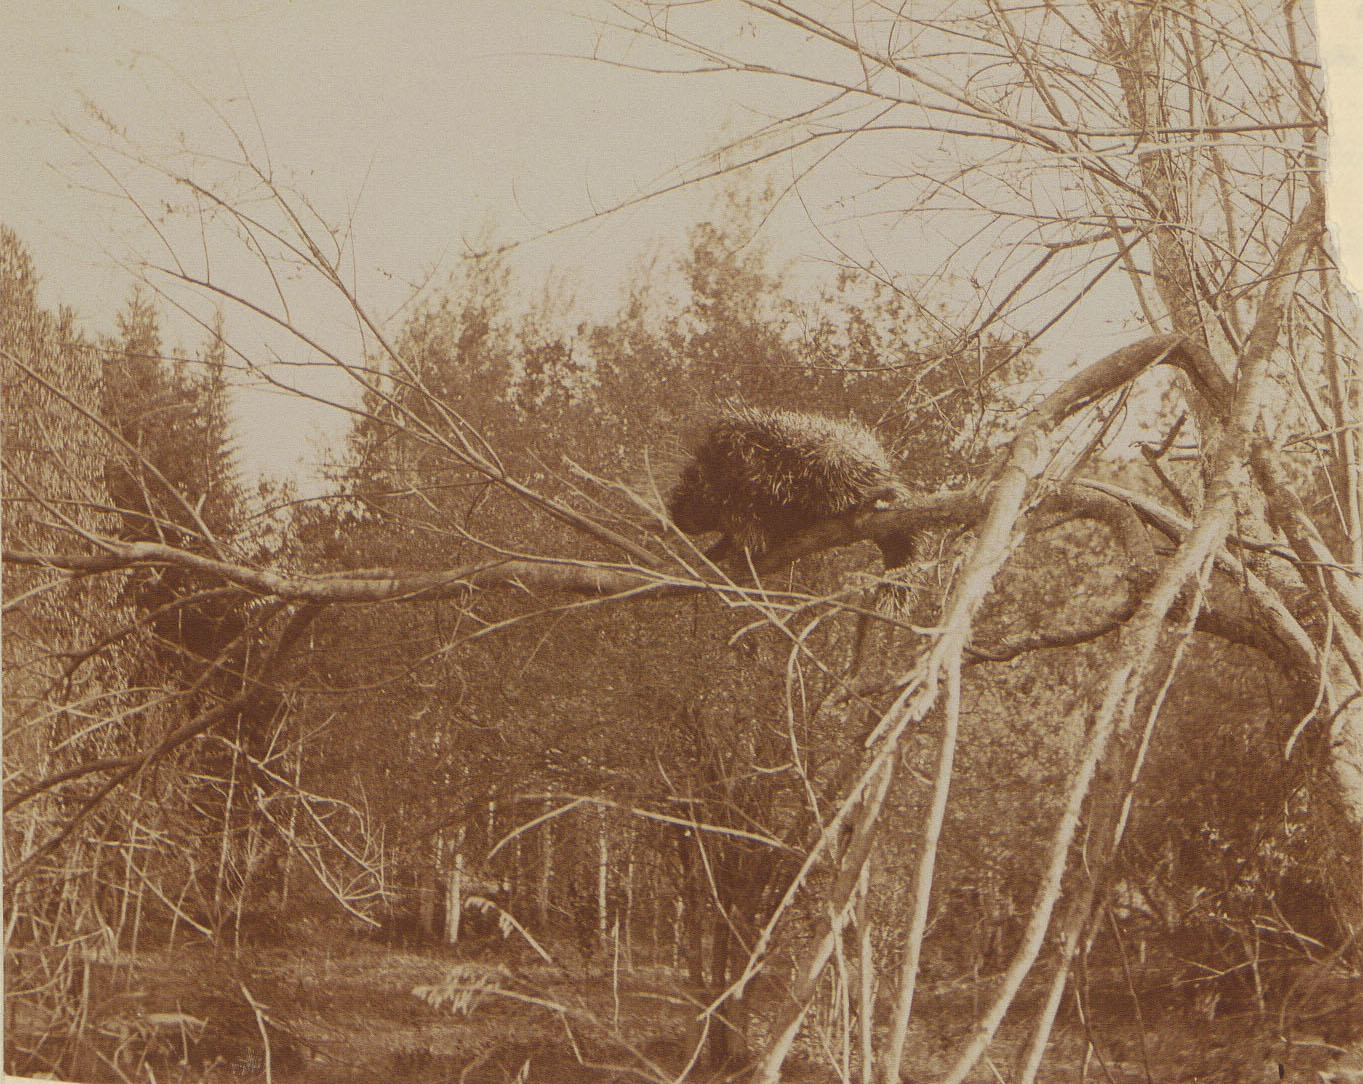 Sepia-toned photo of a porcupine on a tree branch.